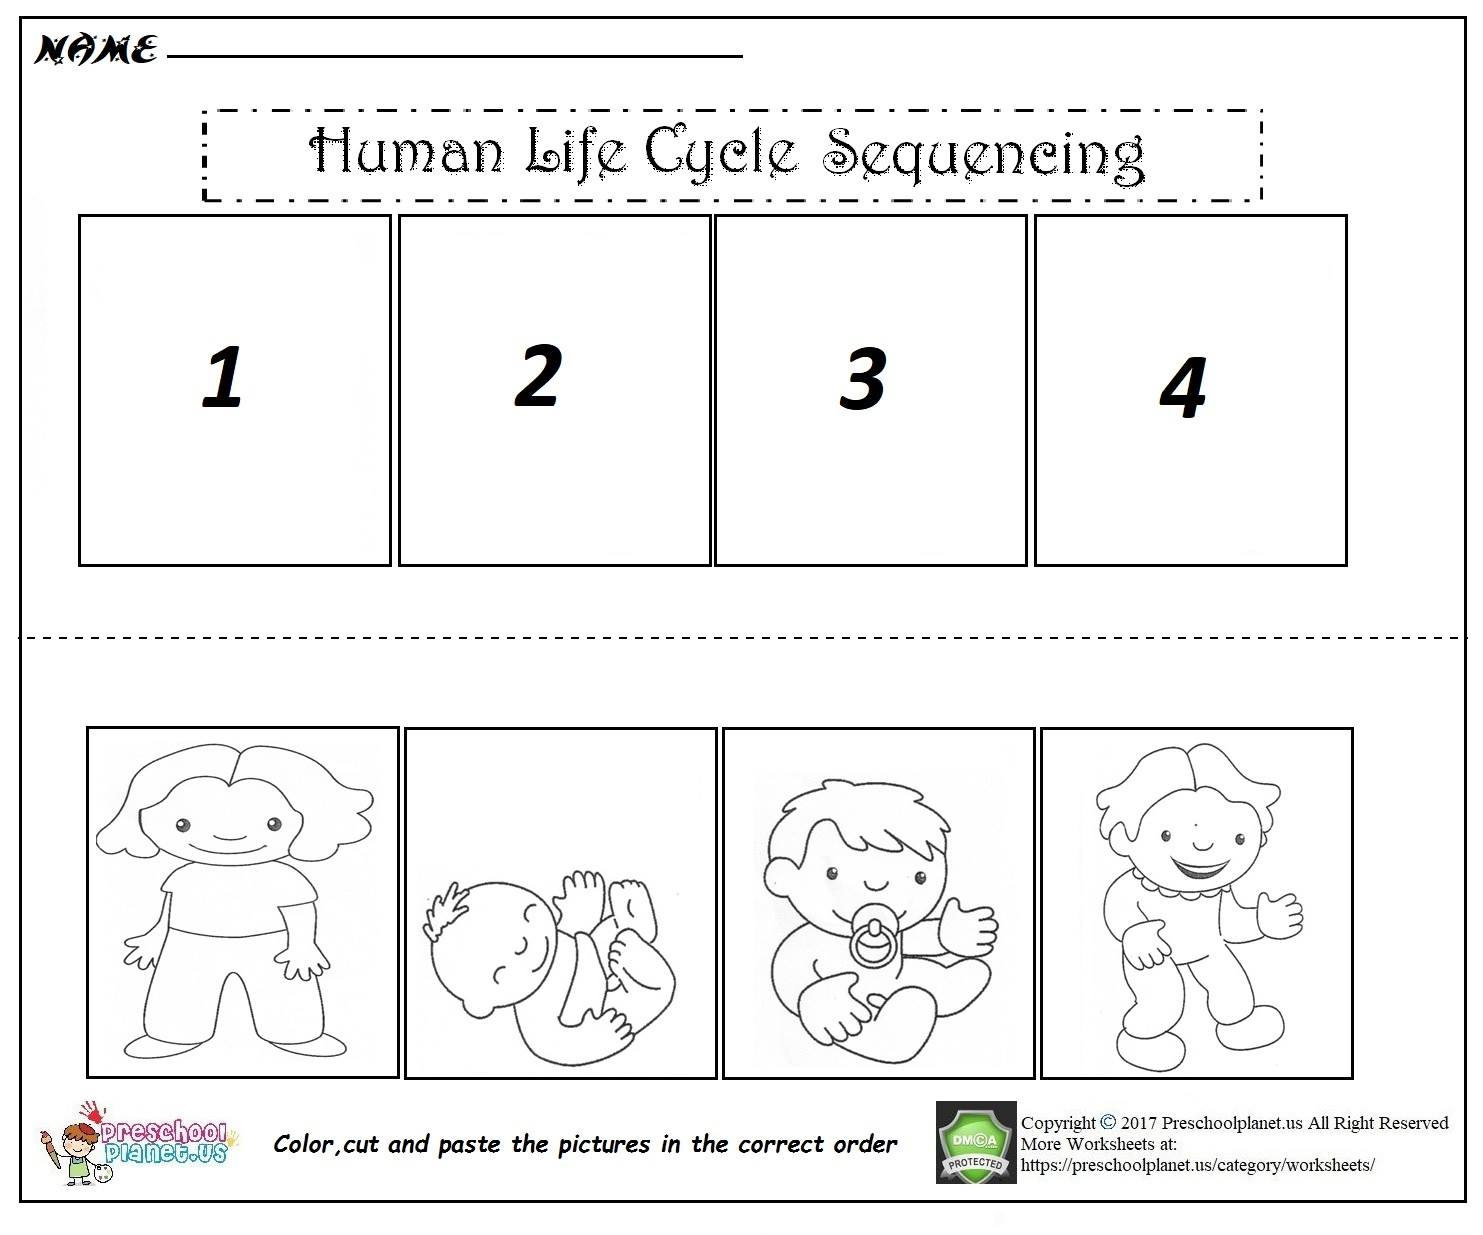 Human Life Cycle Sequencing Worksheet on Printable Preschool Worksheets Cut And Paste Clothes